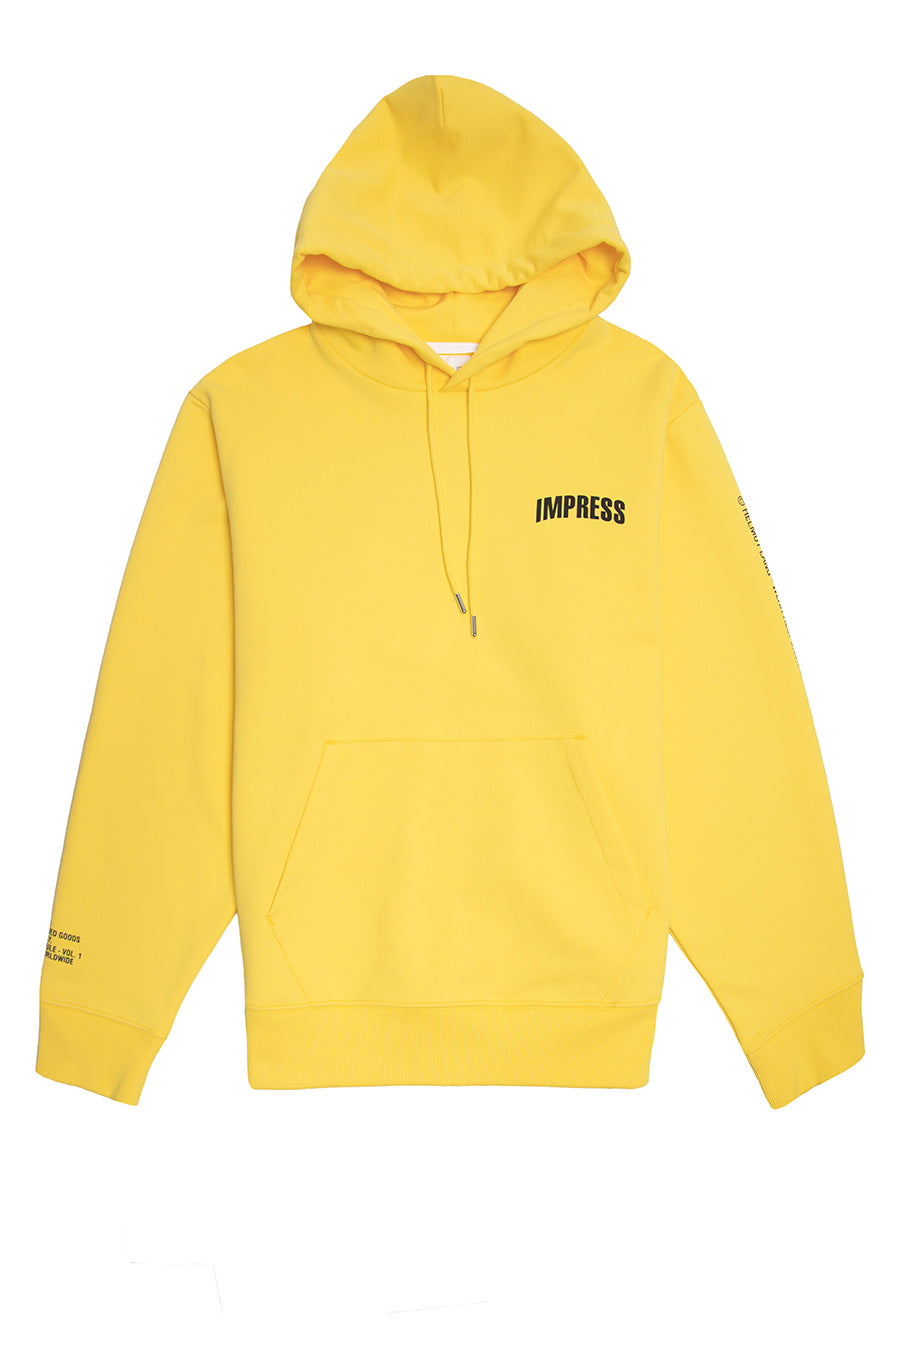 Helmut Lang - Laser Yellow Impress Hoodie | 1032 SPACE